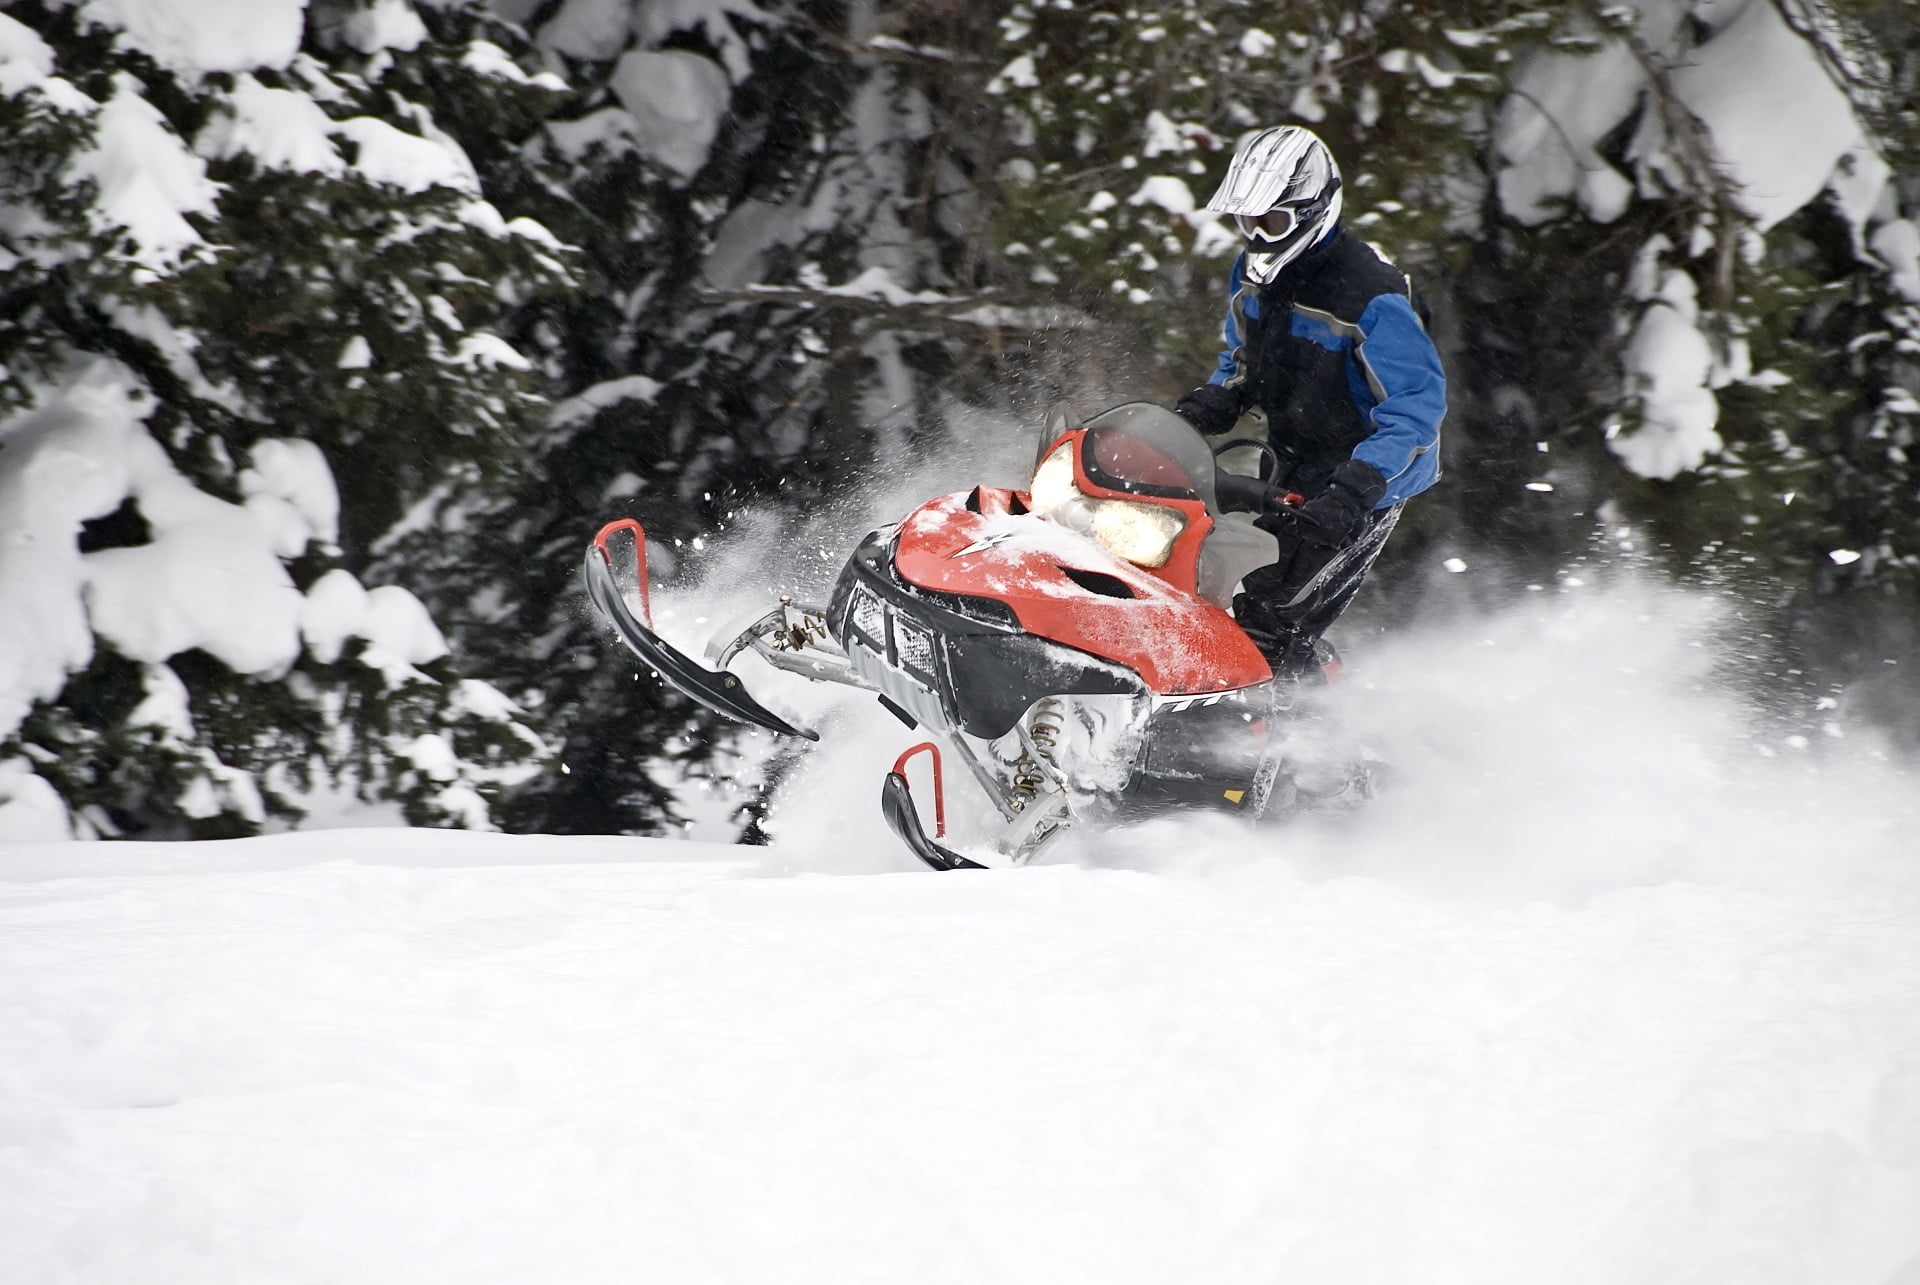 A skilled snowmobiler riding in extreme powder.  (see more snowmobilers in my portfolio.)